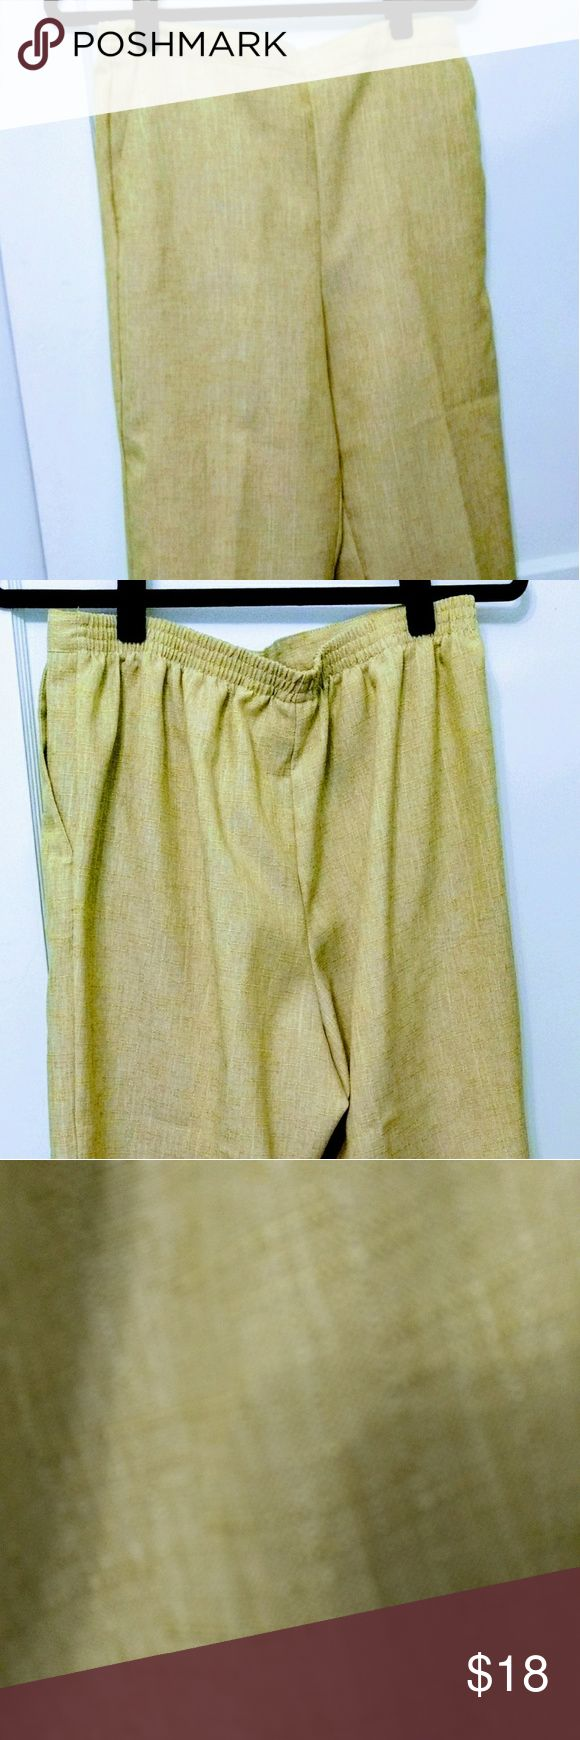 Alfred Dunner These light green pants have a textured look. They have a flat front & elastic back, for comfort. They match a blouse, previously listed. 100%polyester. Care machine wash cold; tumble dry low. Great lightweight fabric, perfect for spring & summer. Alfred Dunner Tops Blouses